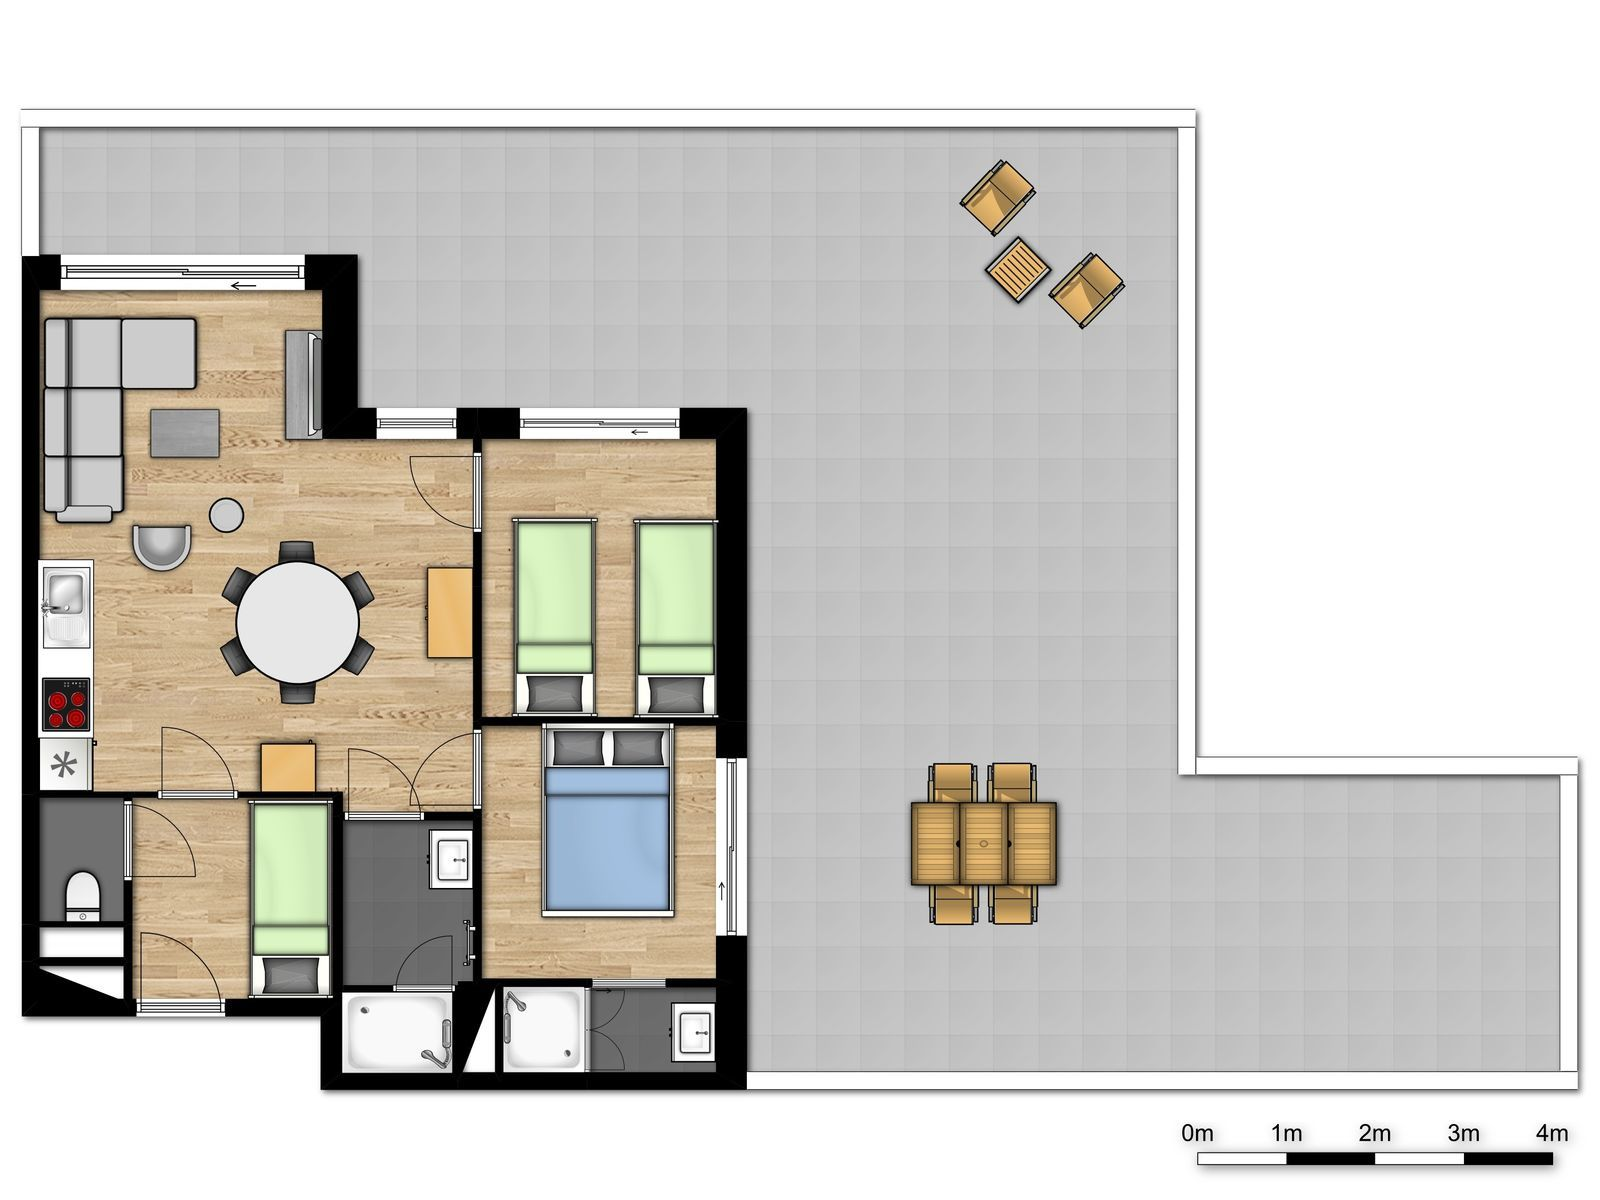 New deluxe penthouse for 6 people with 2 bedrooms